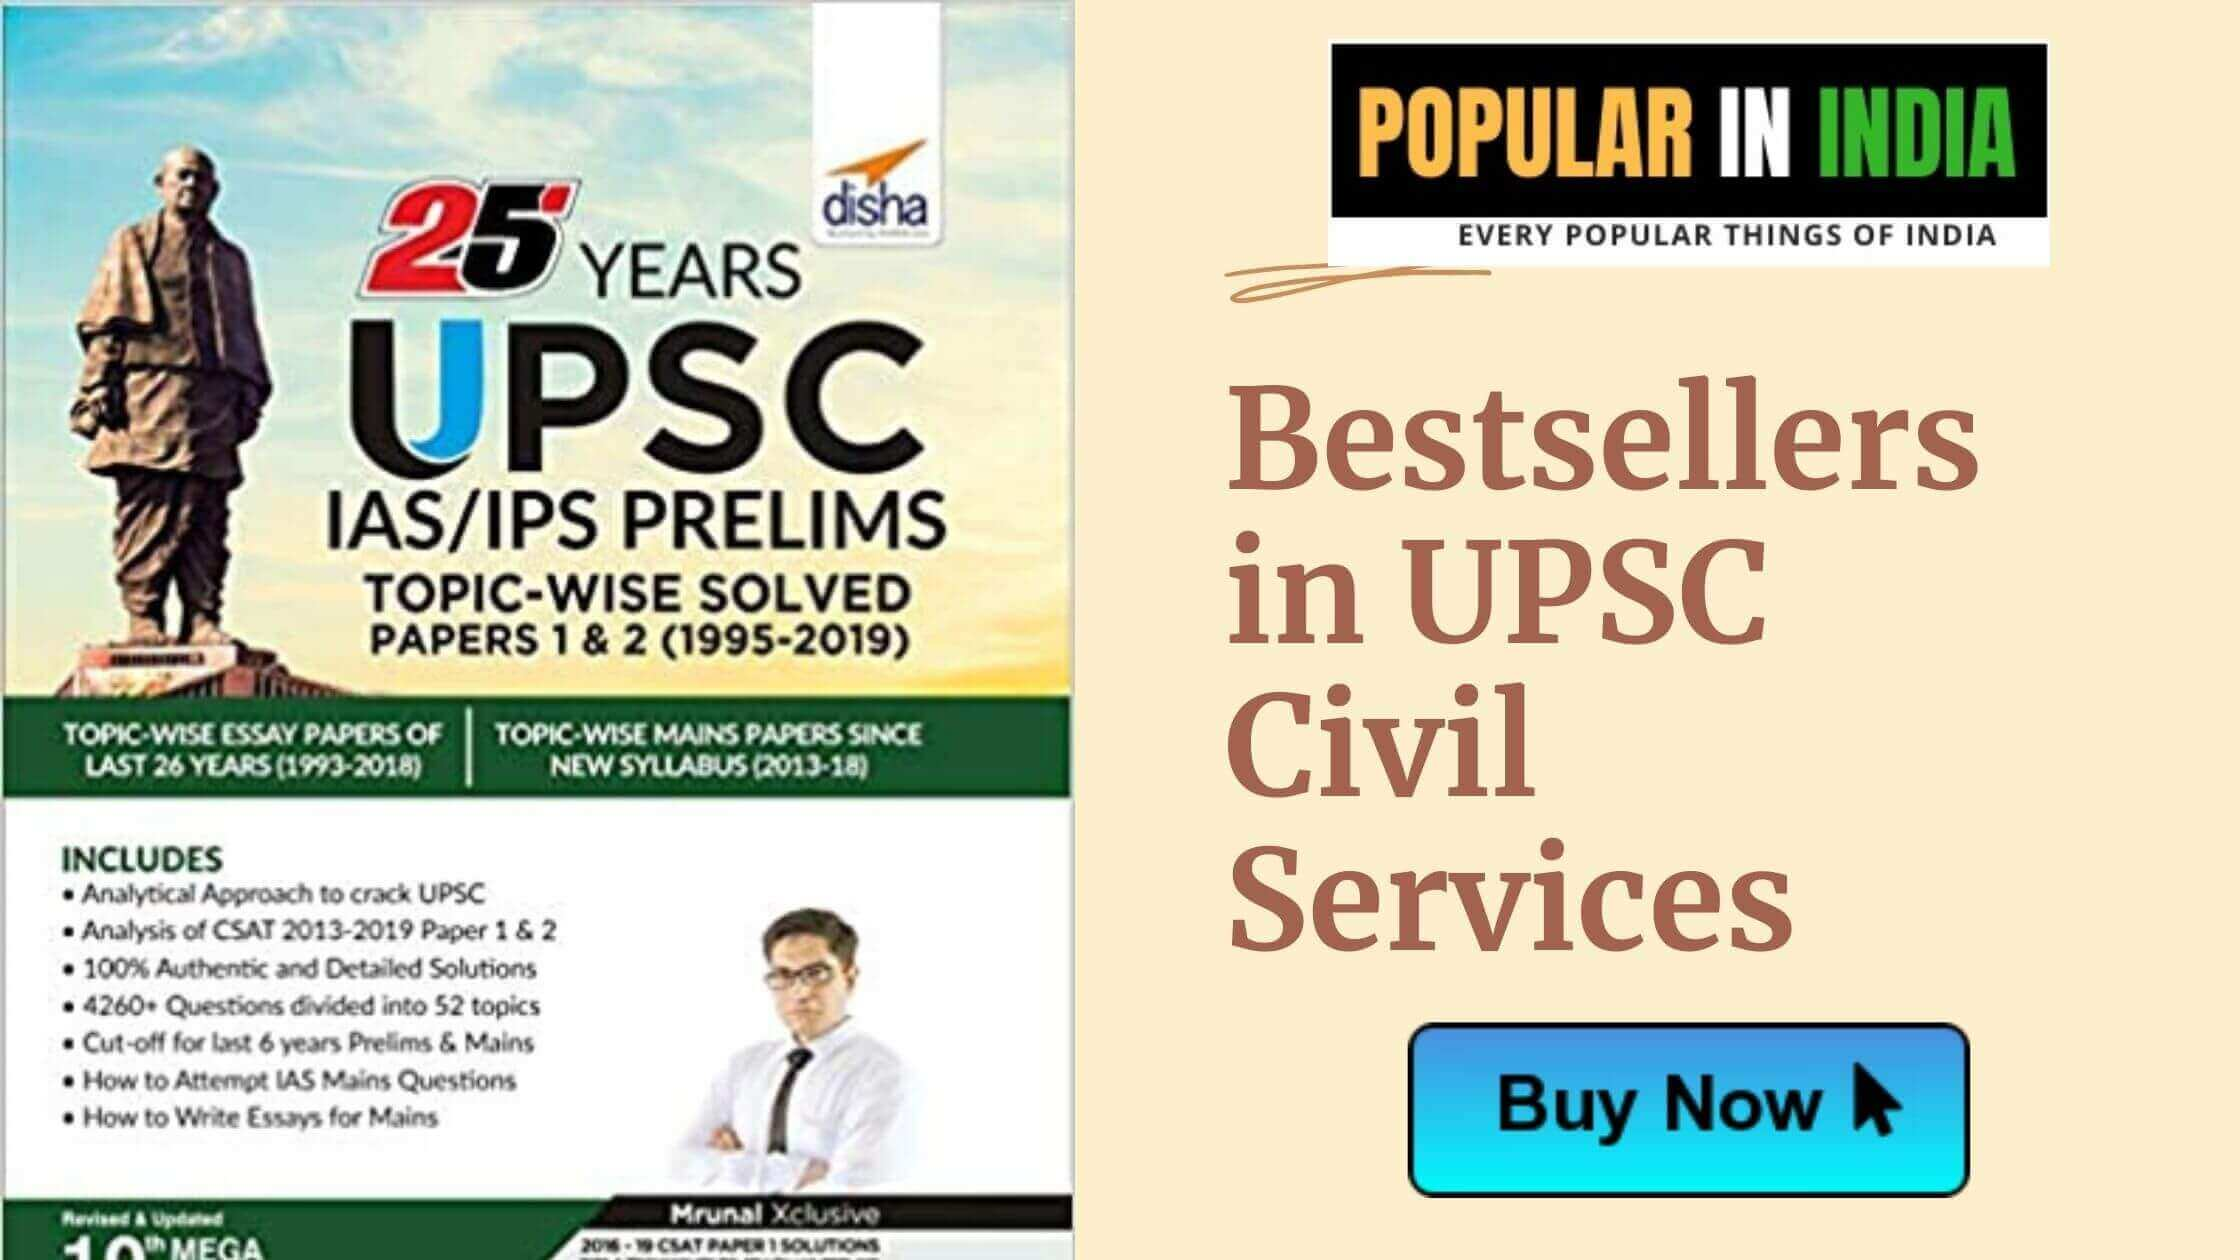 Bestsellers in UPSC Civil Services popular in India